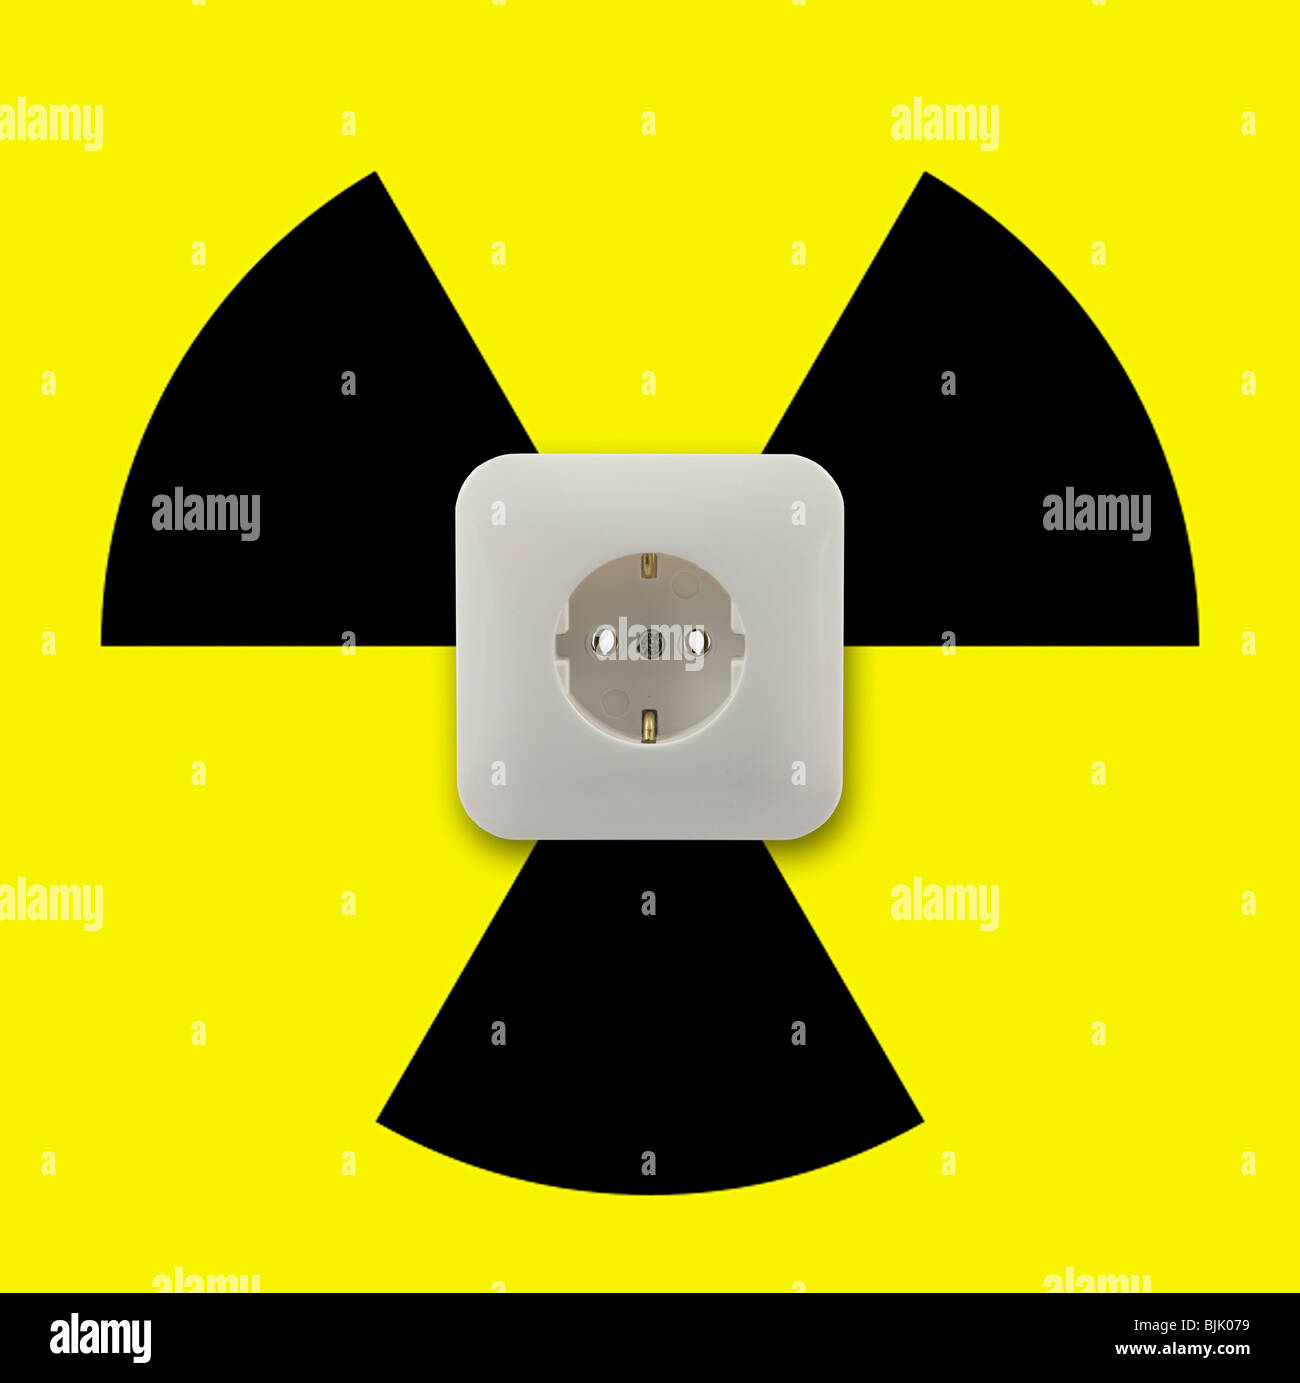 Symbolic image for electricity from nuclear energy, nuclear power - Stock Image